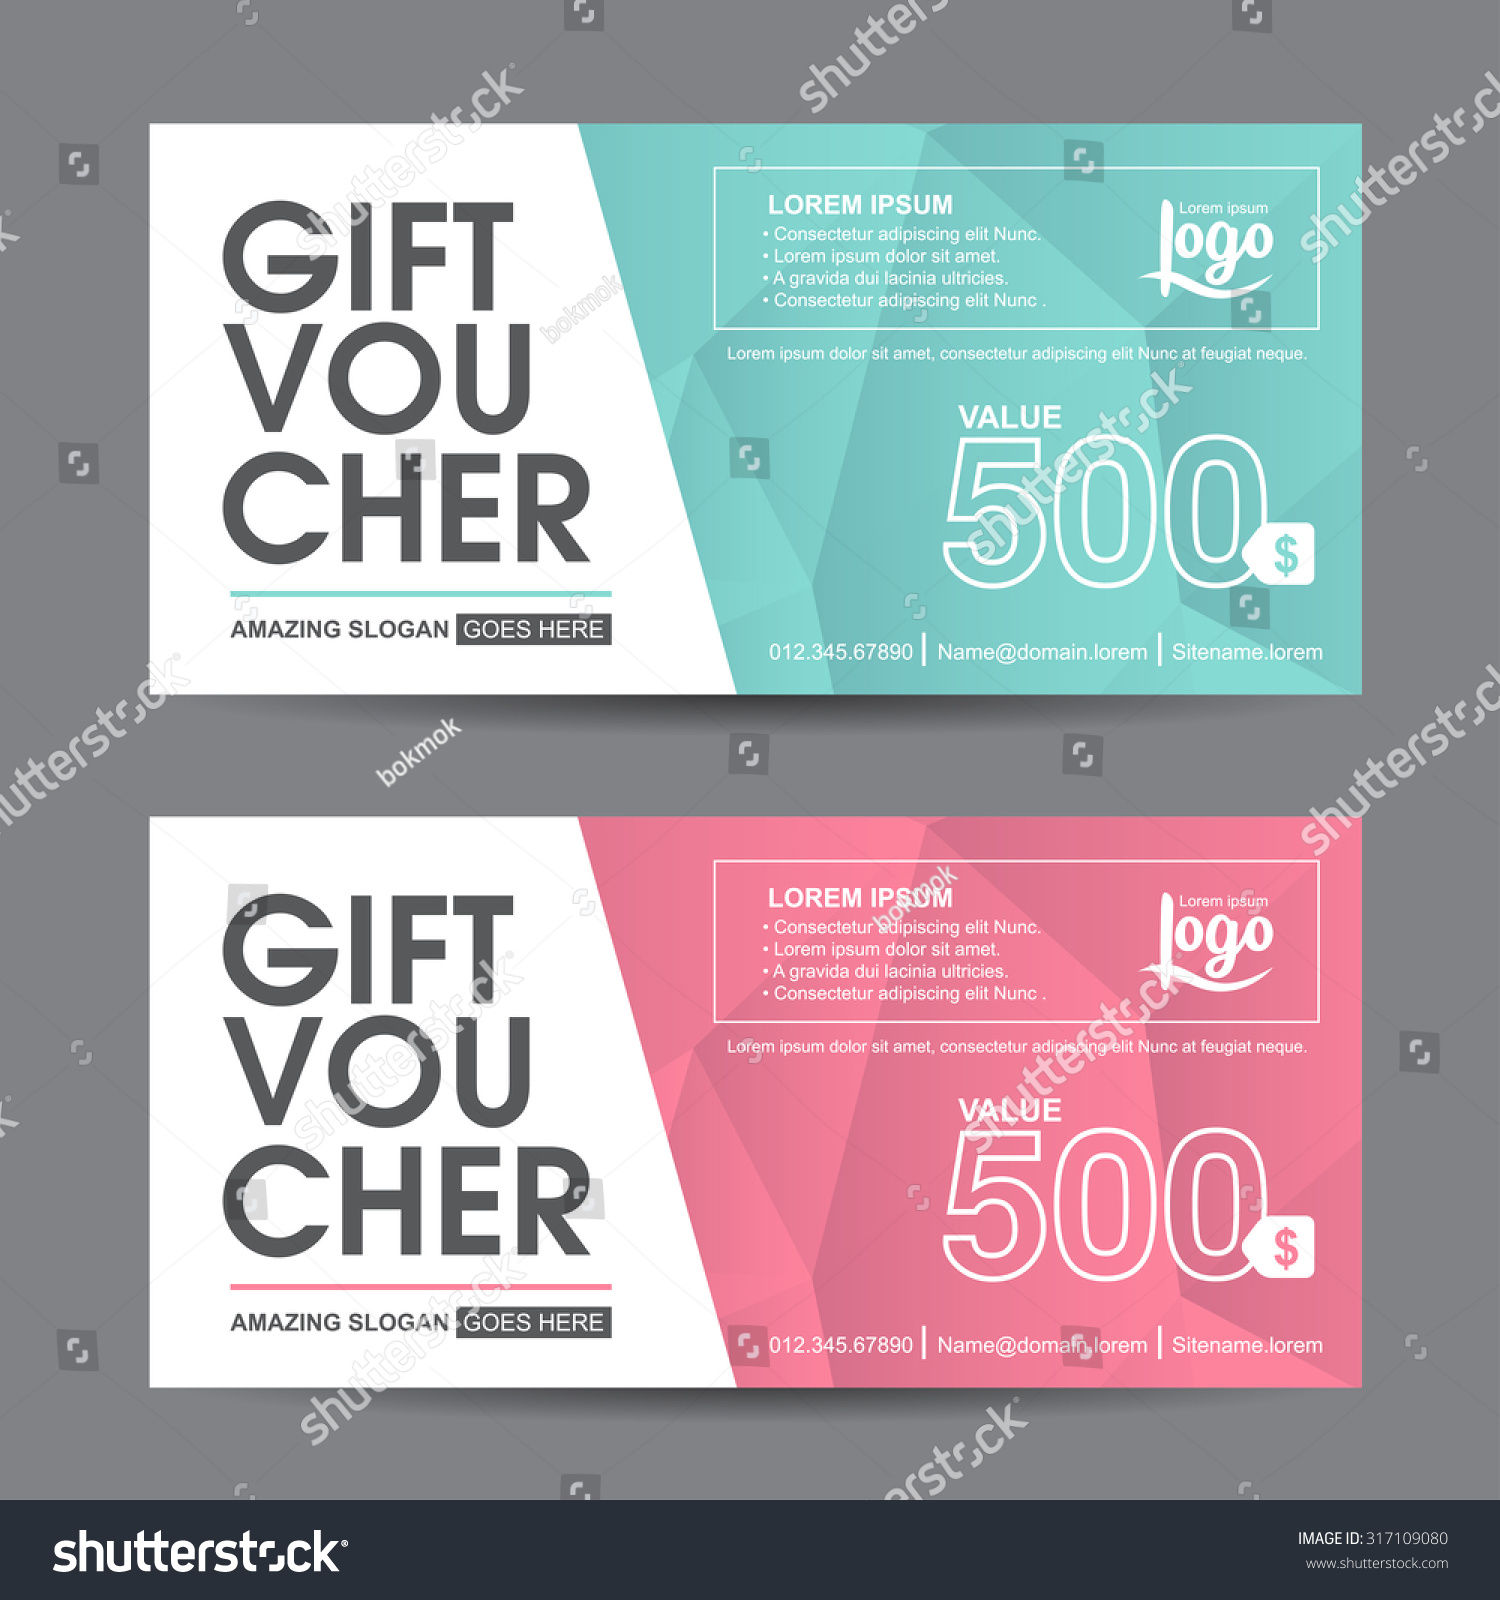 Doc585275 Voucher Sample Design 15 Coupon Voucher Templates – Coupons Design Templates